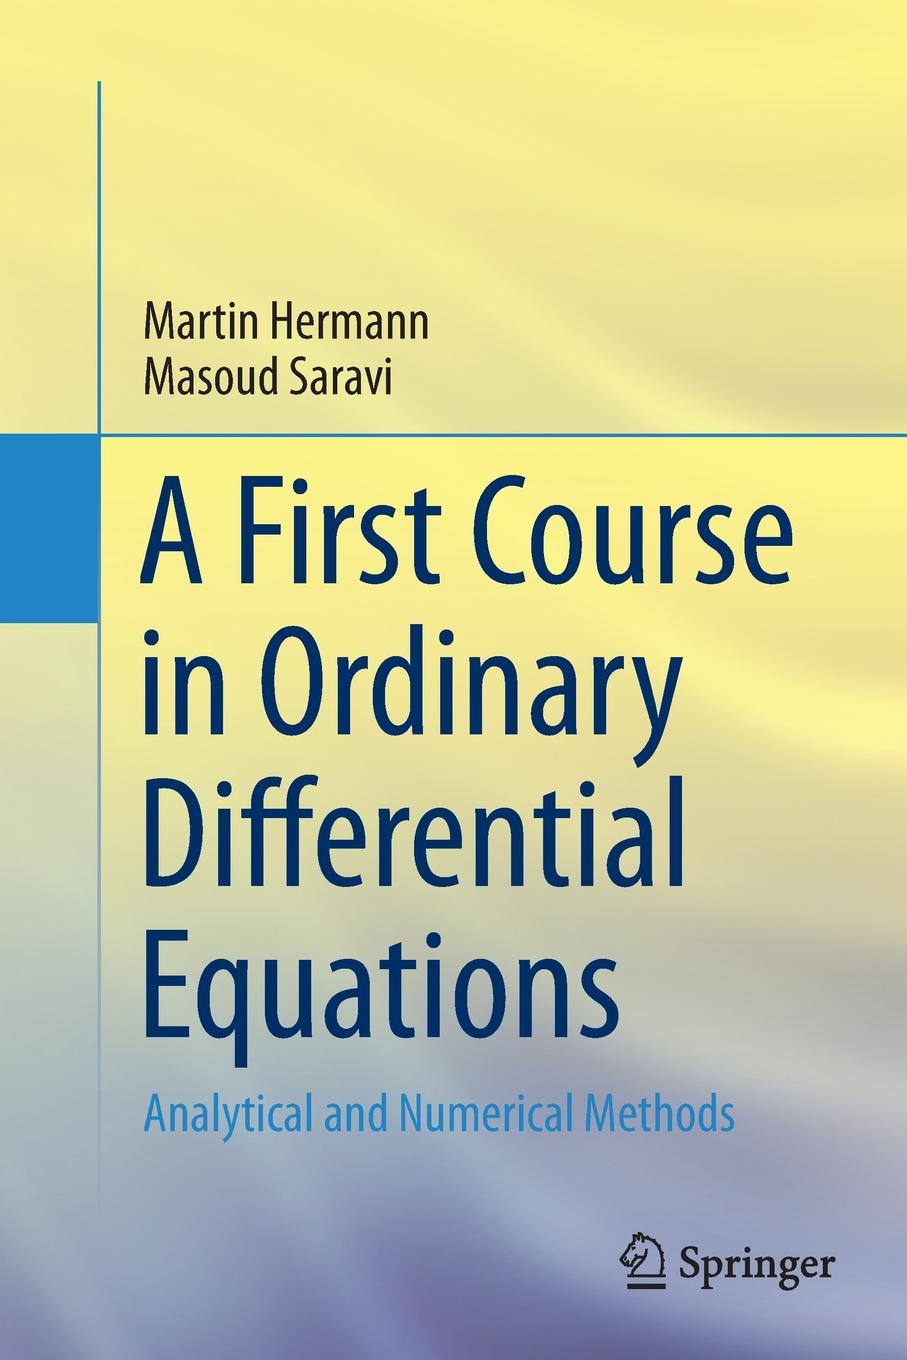 цены на Martin Hermann, Masoud Saravi A First Course in Ordinary Differential Equations. Analytical and Numerical Methods  в интернет-магазинах